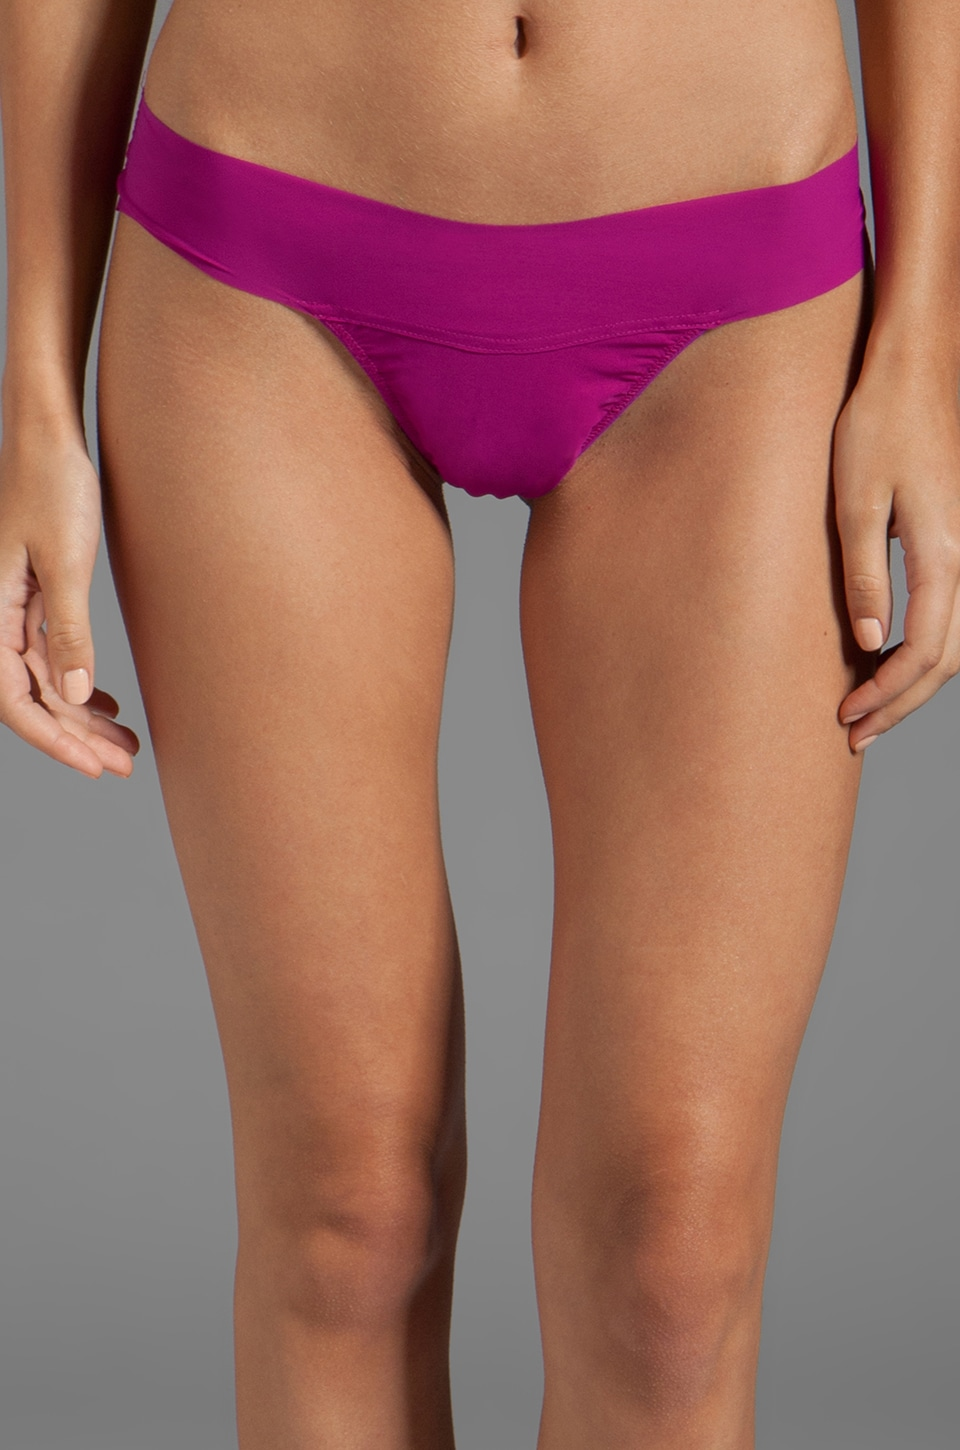 Hanky Panky 'Eve' Natural Rise Thong in Hot Fuchsia